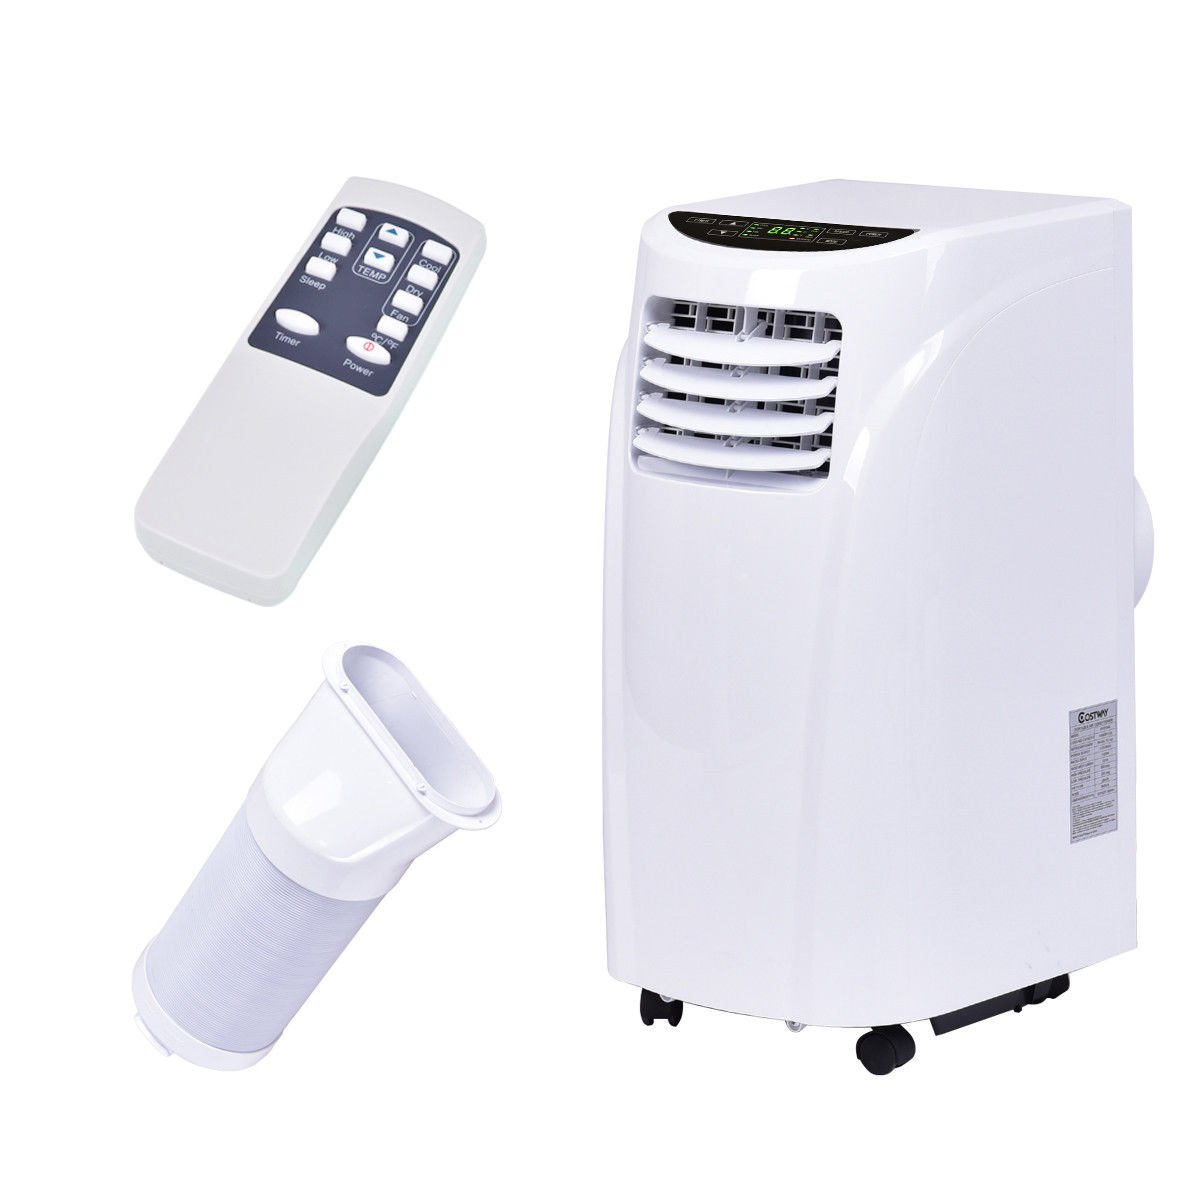 Costway 10,000 BTU Portable Air Conditioner with Remote Control Dehumidifier Function Window Wall Mount in White